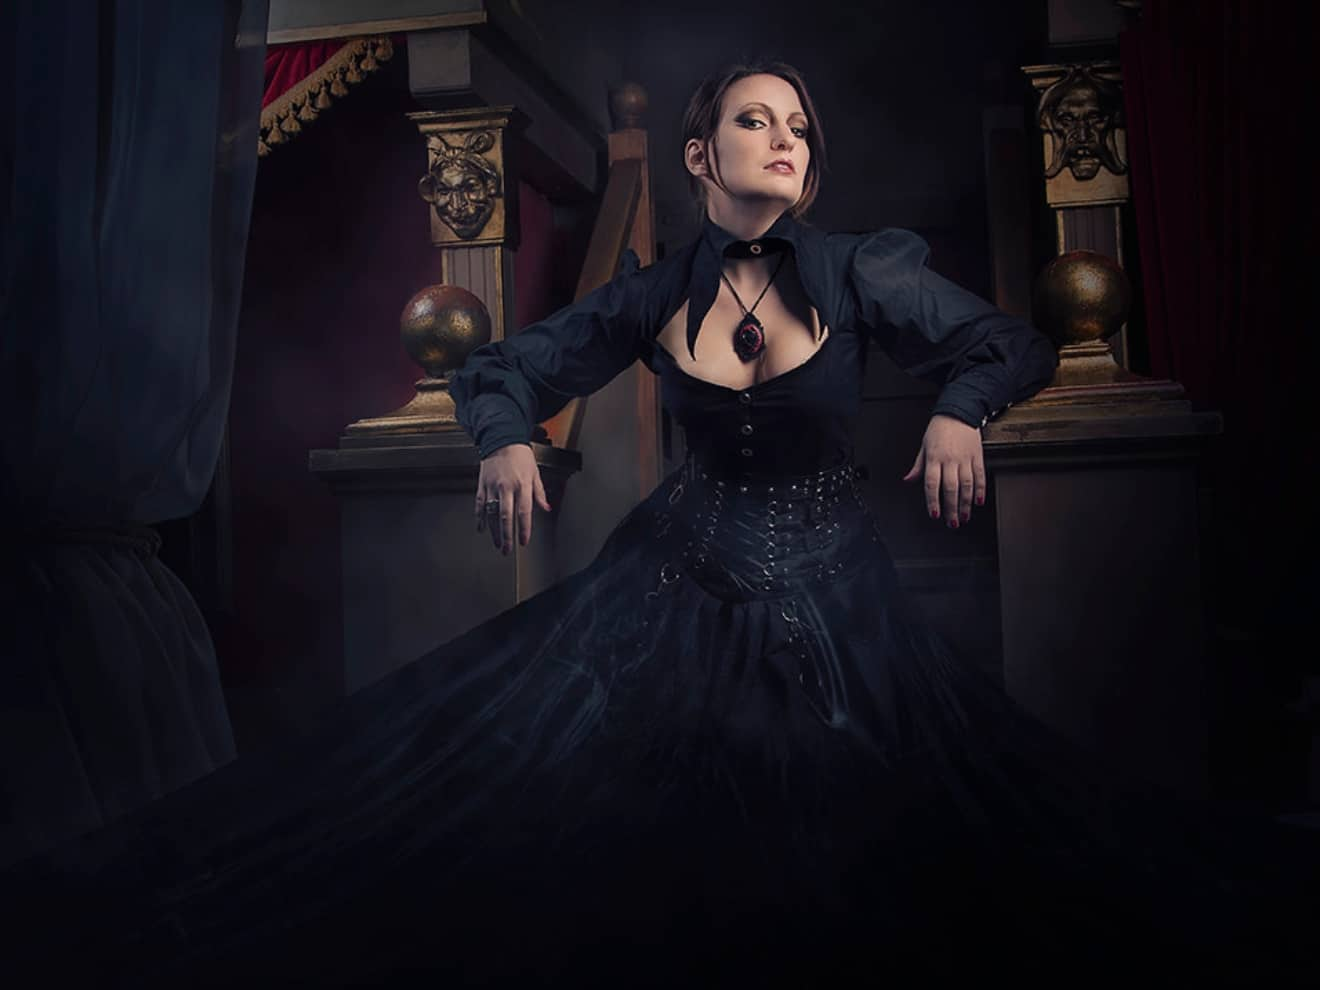 The Penny Dreadful Adaptation, and the Gothic Beasts